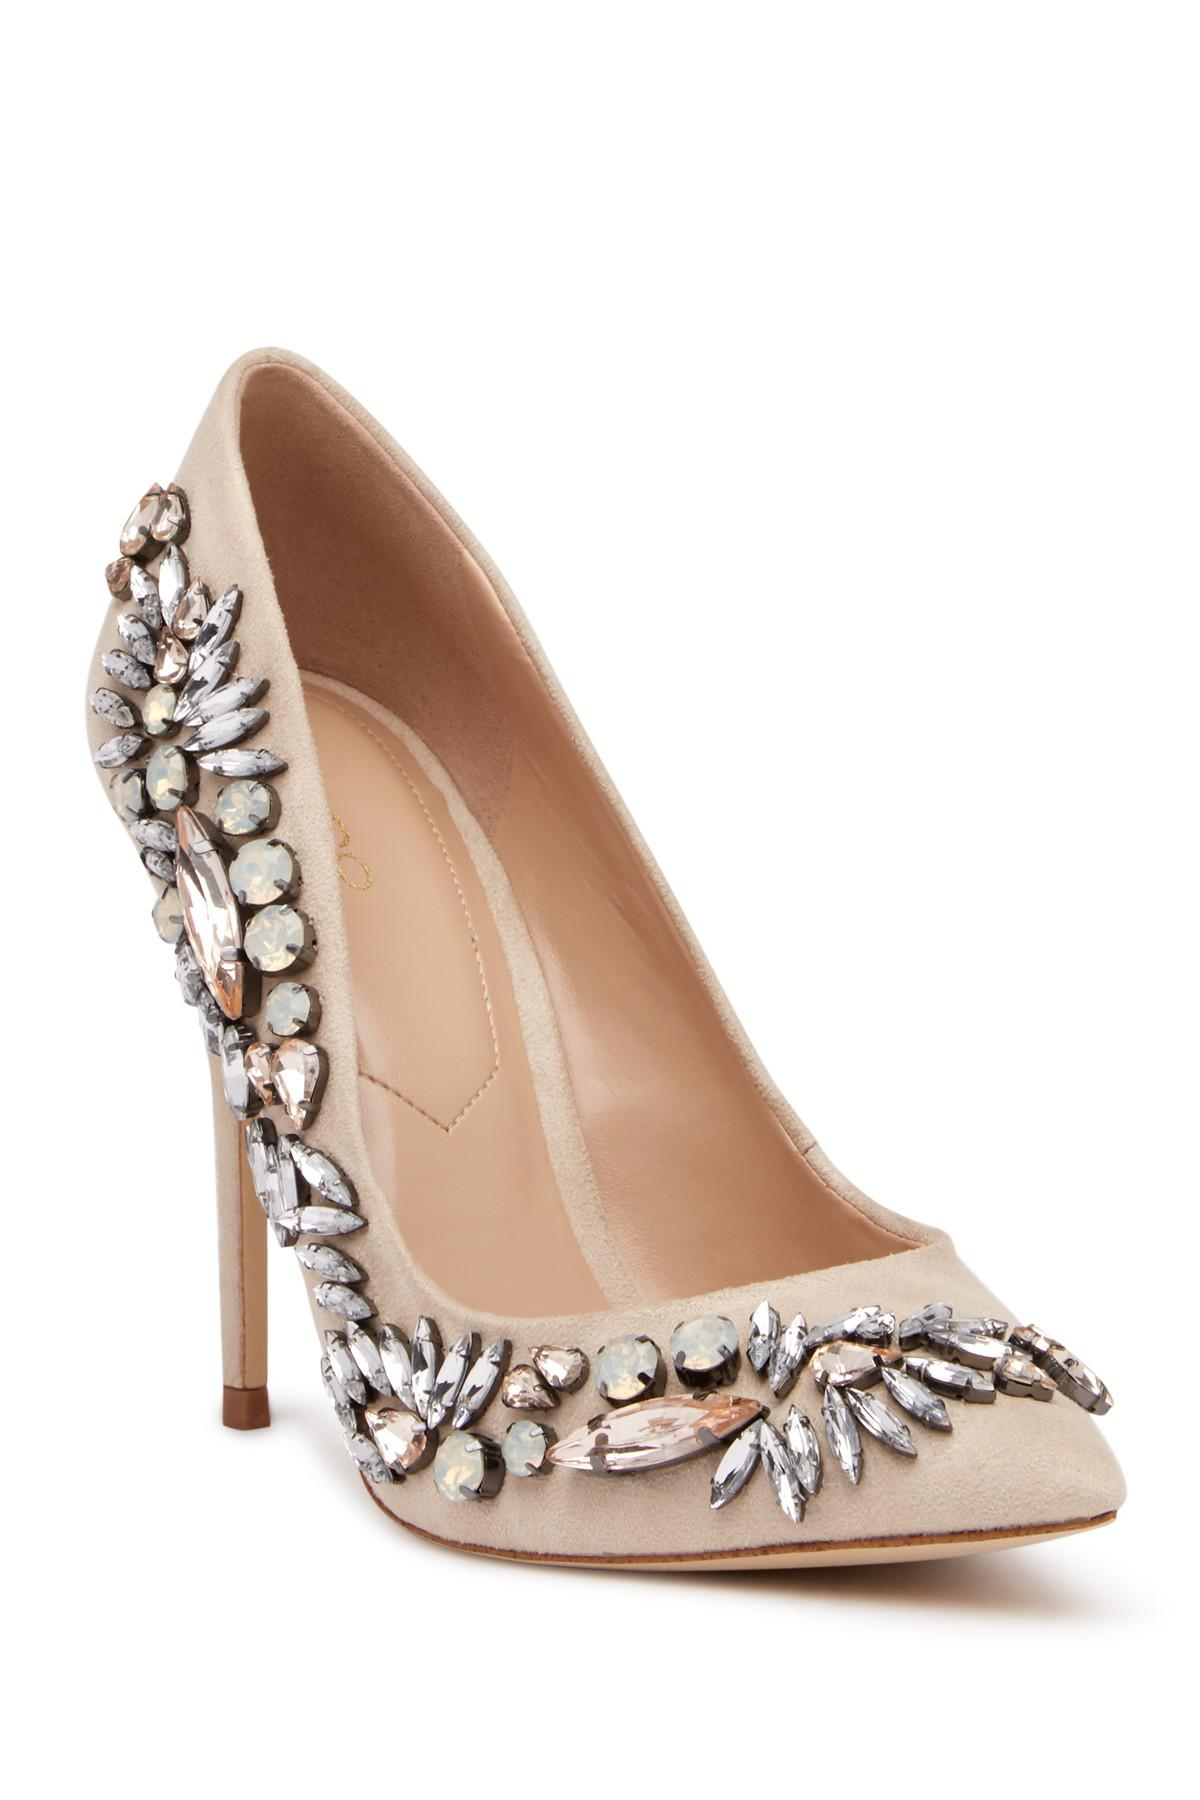 b0bb51687337 ALDO Crystal Embellished Pointed Toe Pump in Natural - Lyst